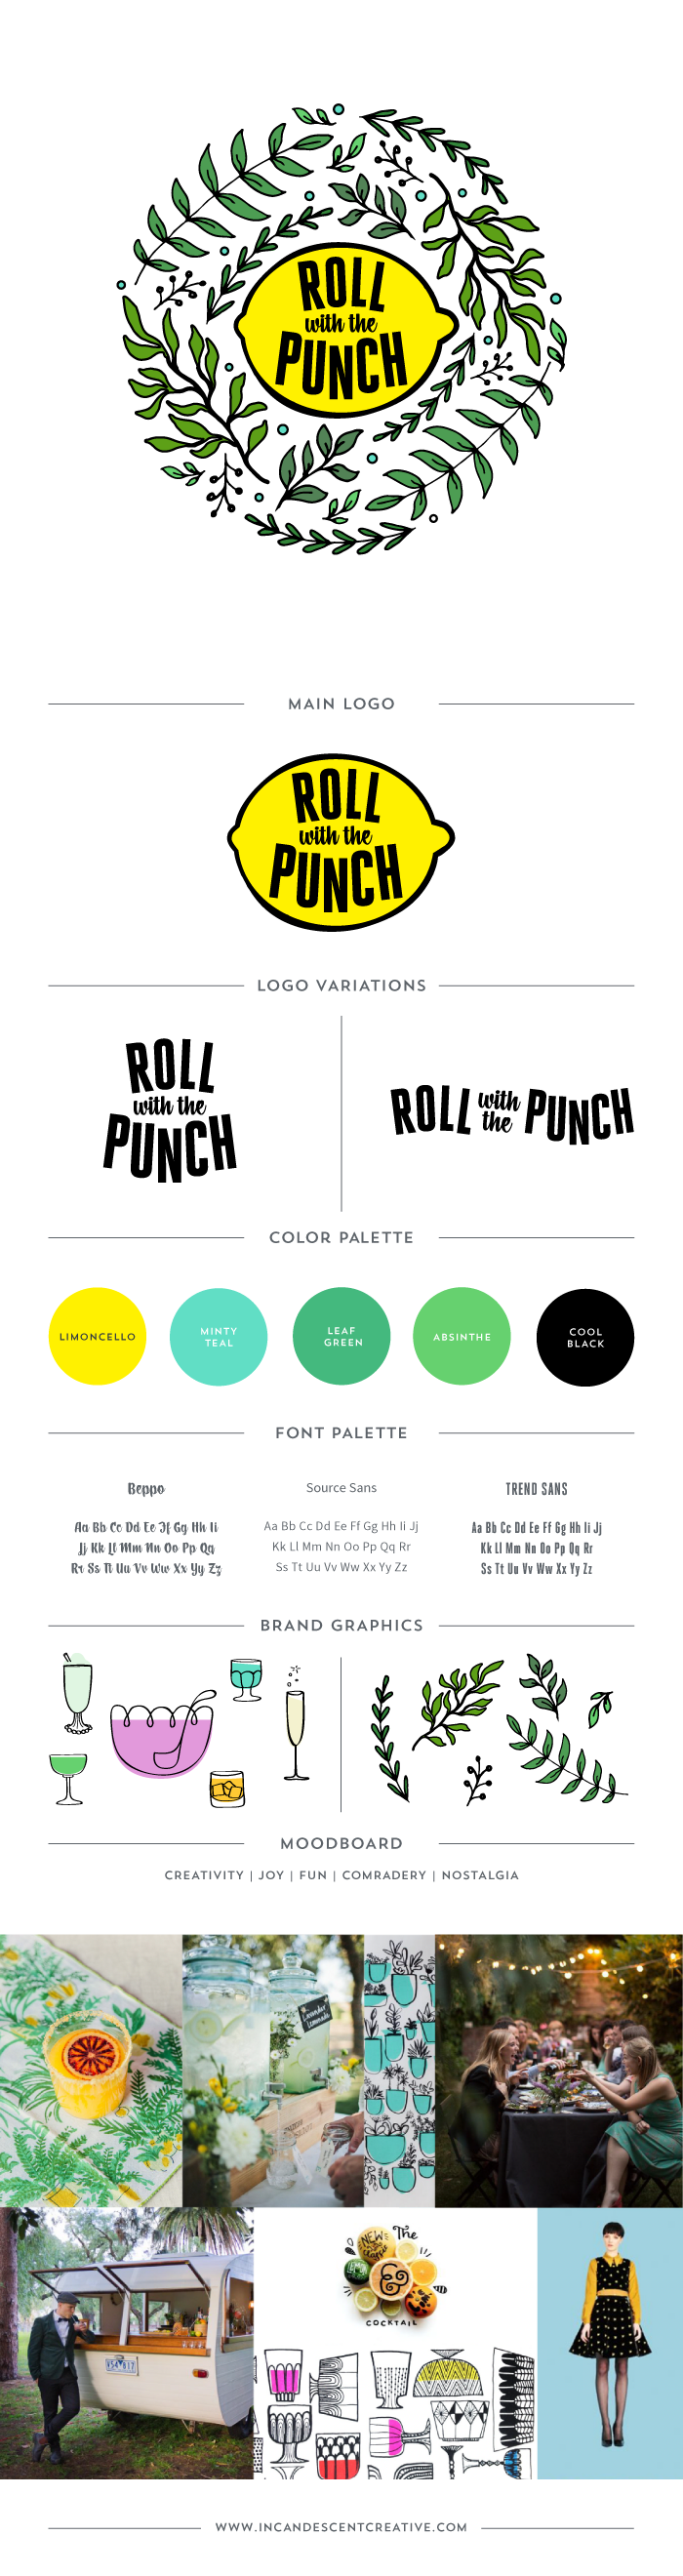 Logo & Brand Style Board for Roll With The Punch by Incandescent Creative – @incndscntcr8tiv  | branding, graphic design